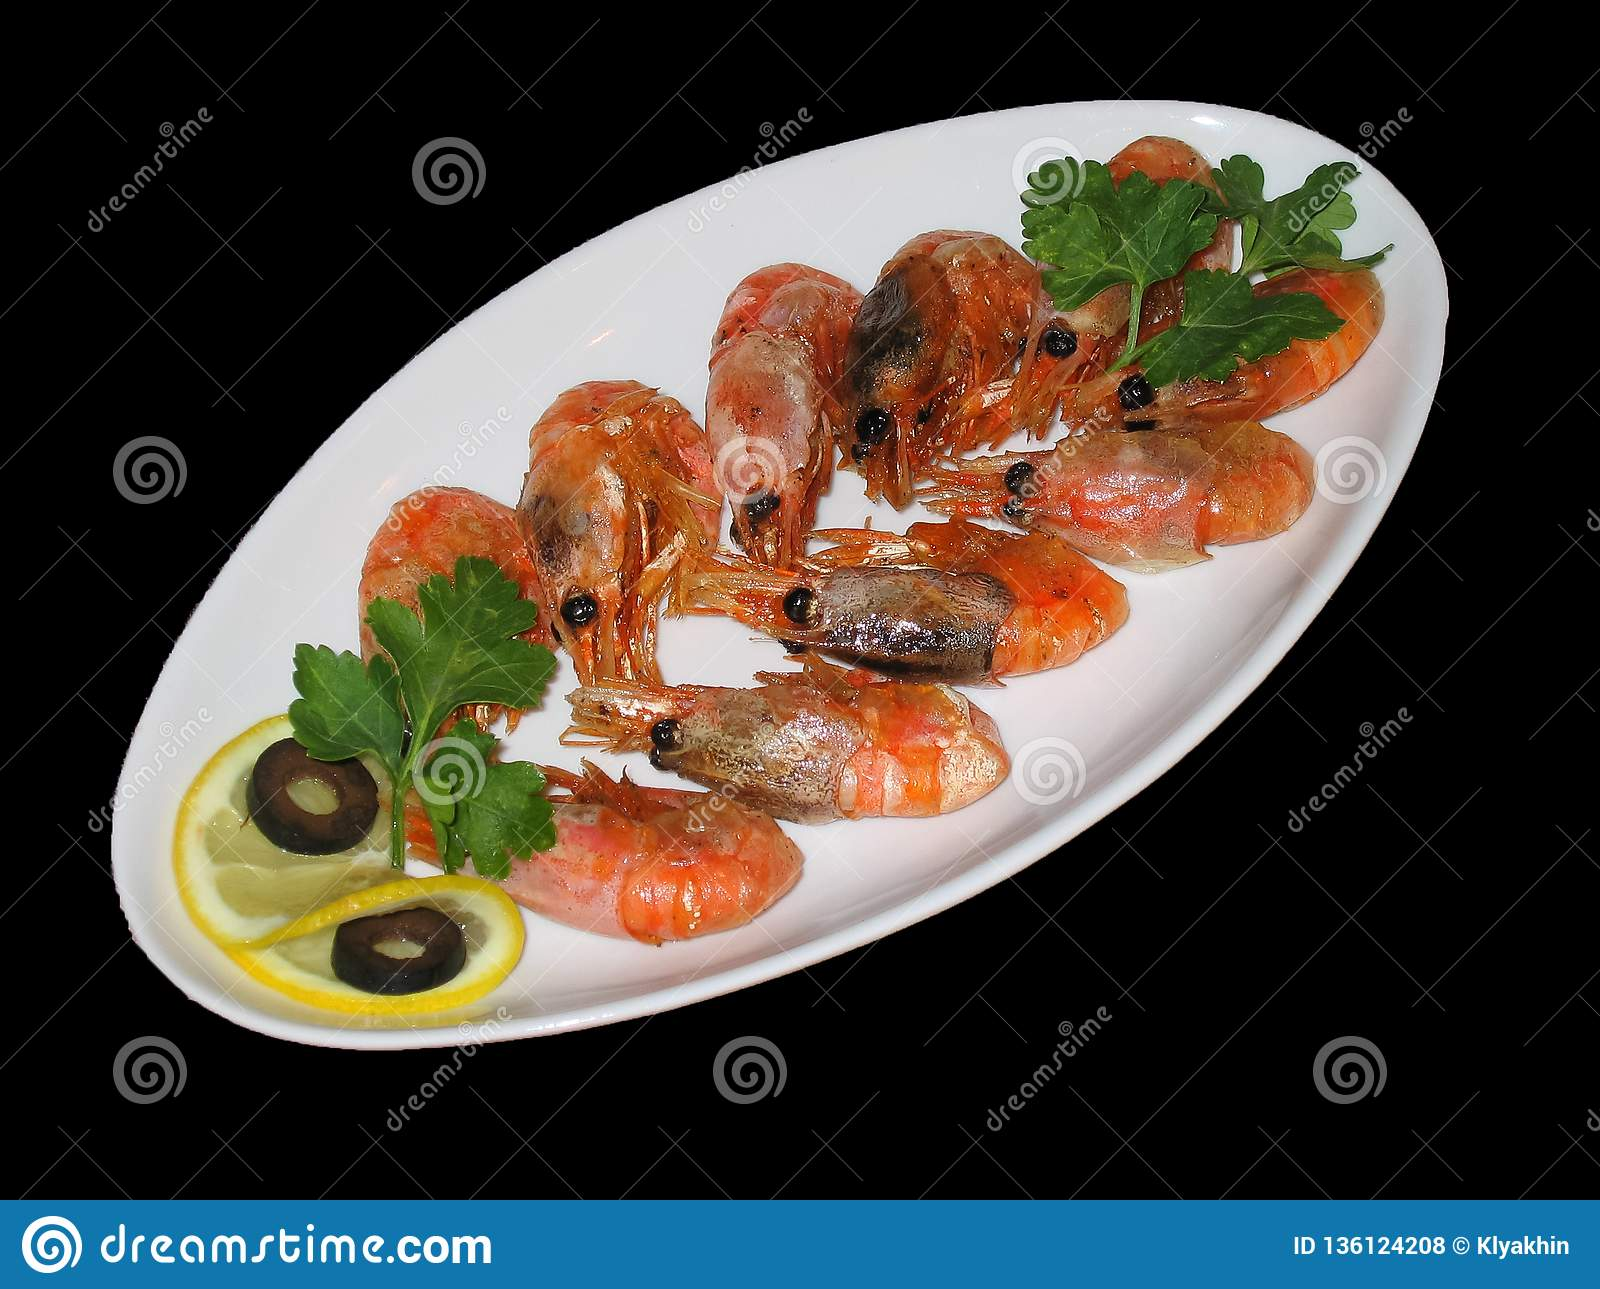 Fried shrimp on a plate of isolate